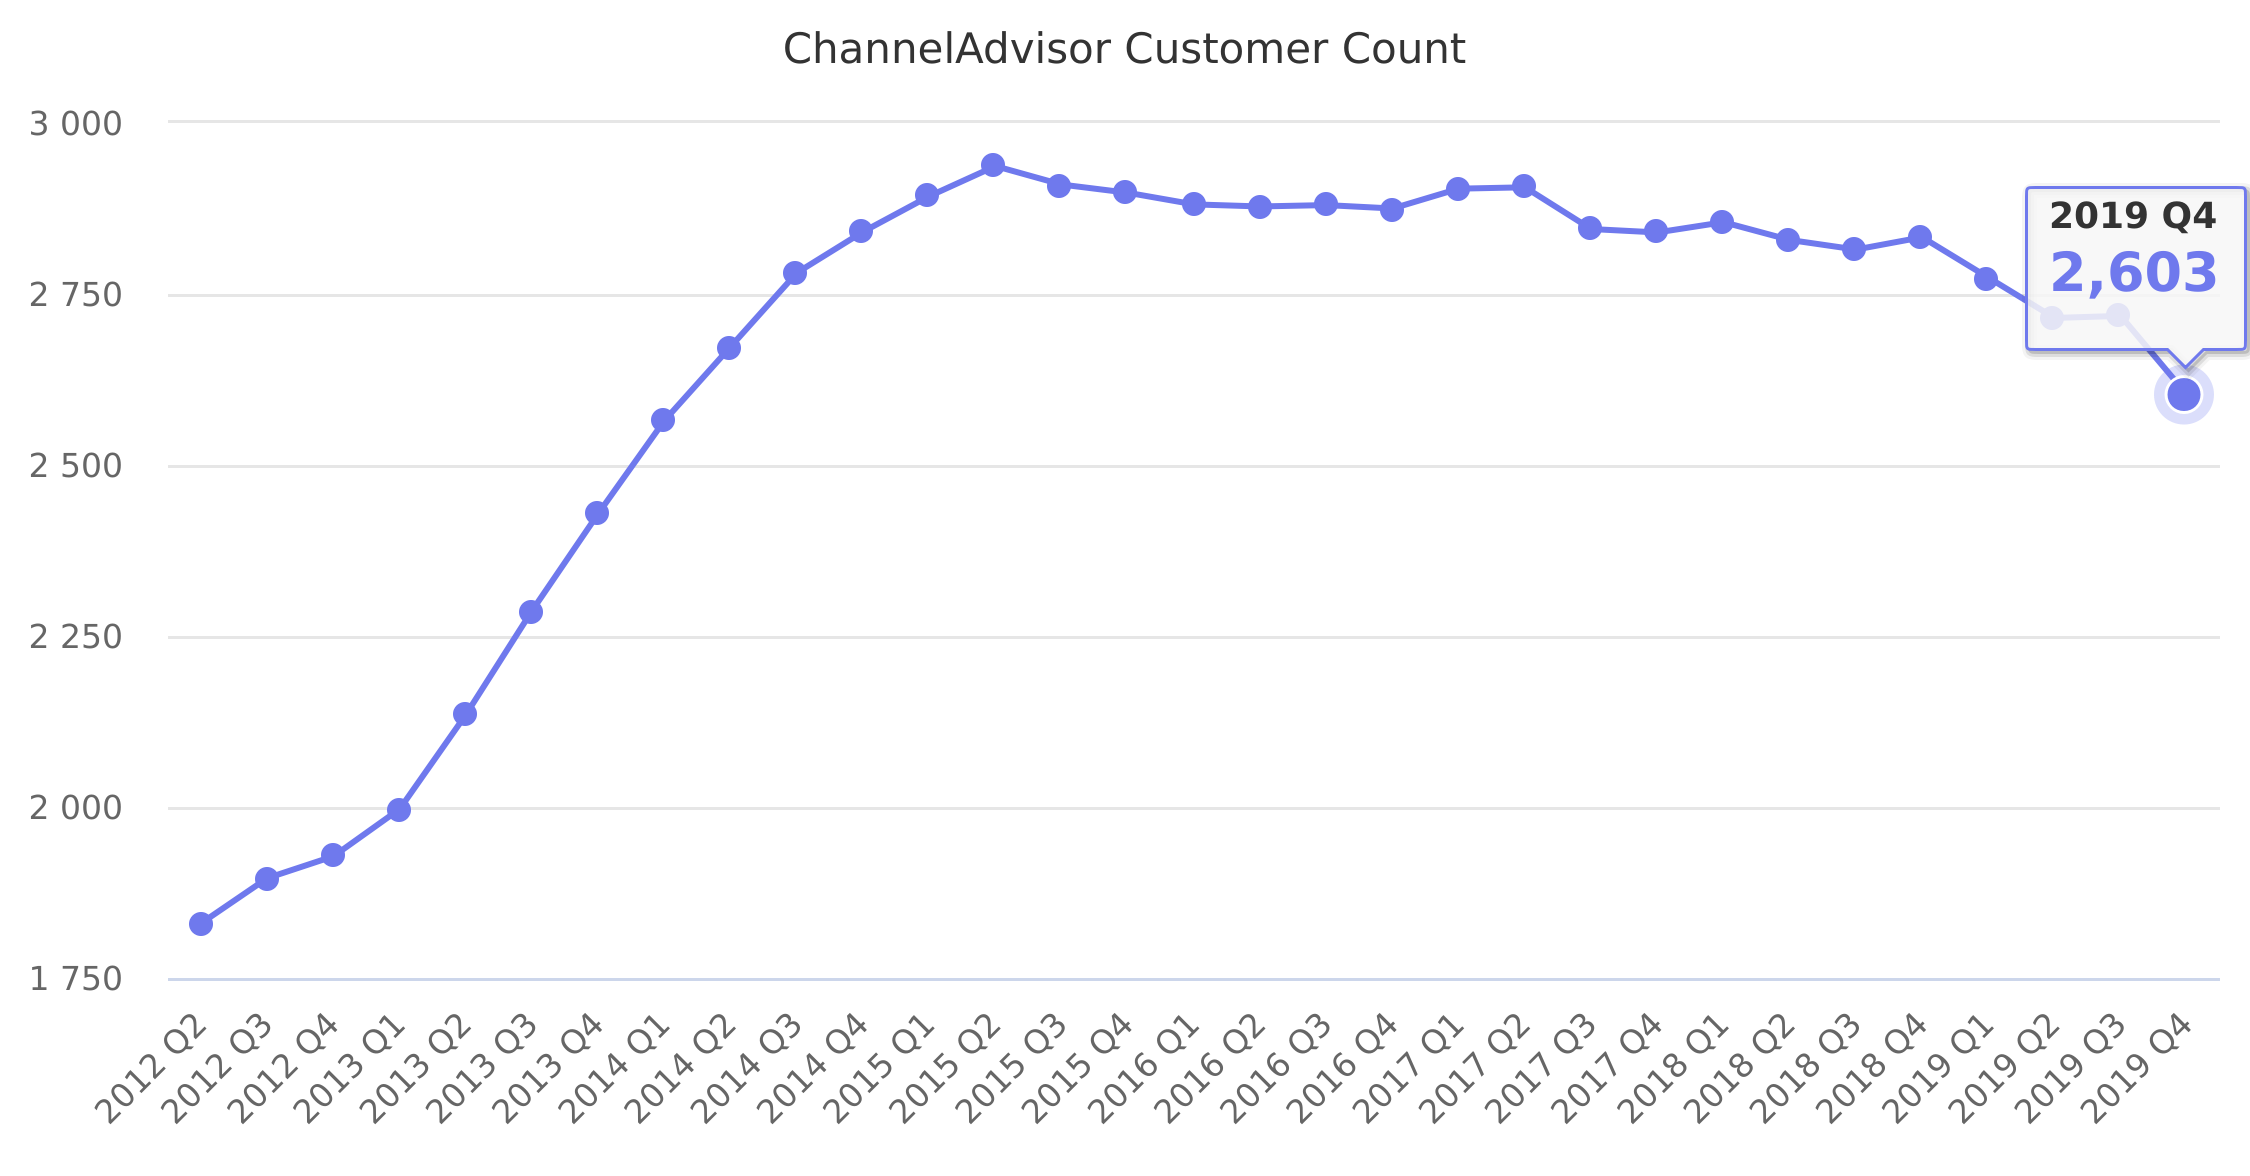 ChannelAdvisor Customer Count 2012-2018